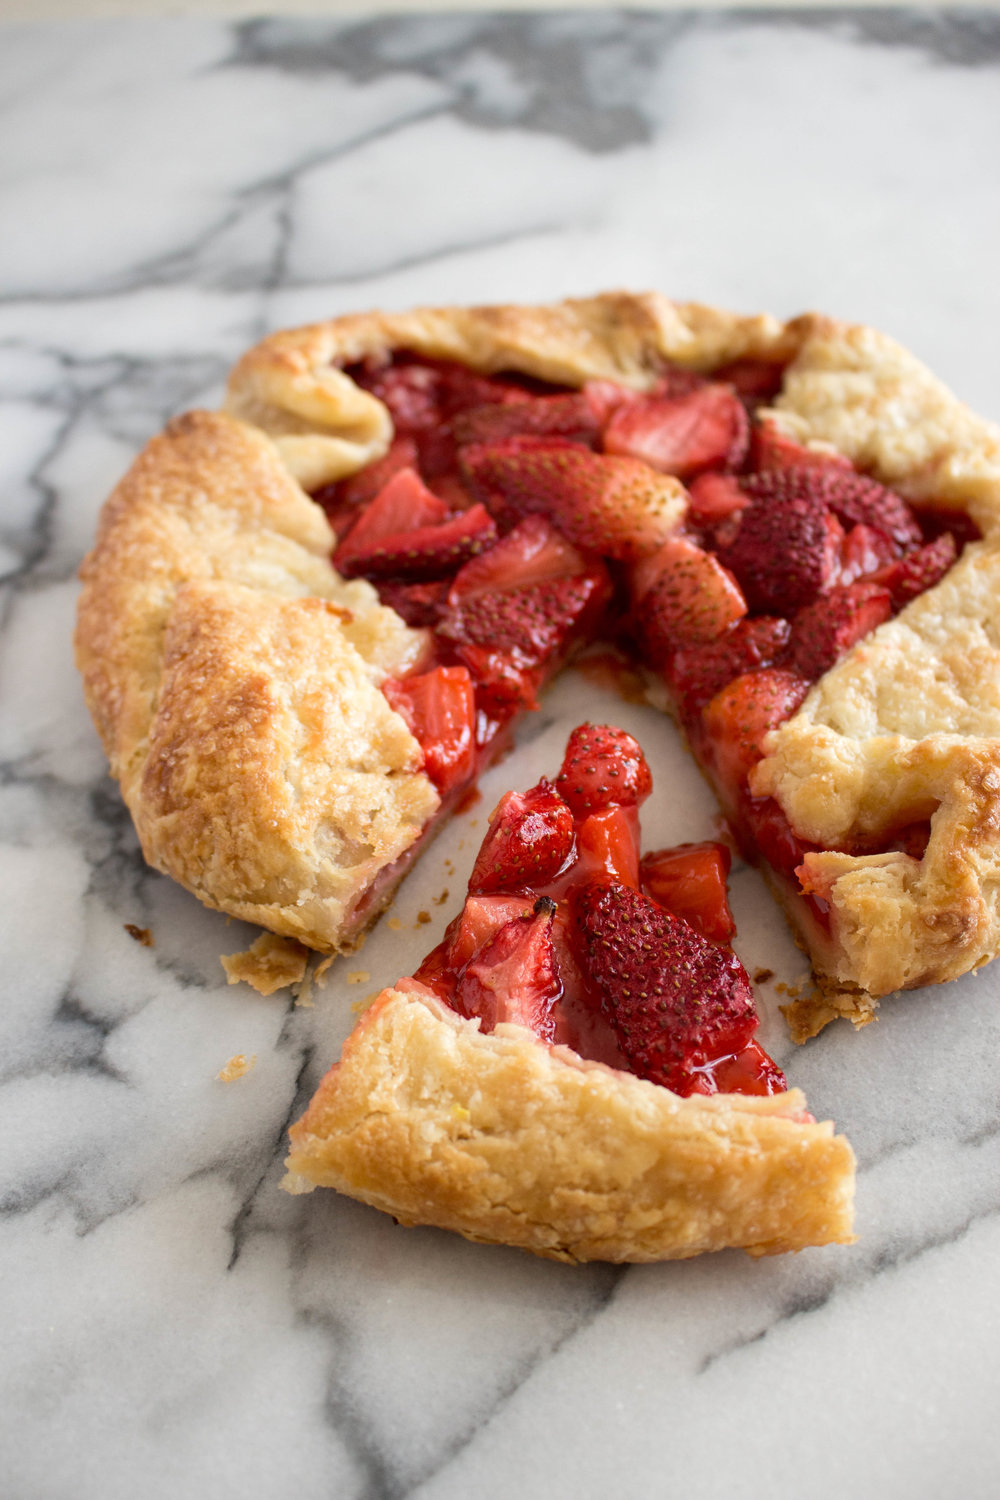 strawberry galette  - makes one 8-inch galetteadapted from smitten kitchendough1 1/4 cups all-purpose flour1/2 teaspoon salt1 1/2 teaspoons granulated sugarzest of half a lemon8 tablespoons cold unsalted butter, cut into pieces1/4 cup greek yogurt or sour cream3 tablespoons cold waterstrawberry Filling2 cups strawberries, chopped into pieces3 tablespoons granulated sugar2 tablespoons cornstarchJuice of half a lemonPinch of salttopping1 egg yolk beaten with 1 teaspoon waterturbinado sugar, for sprinkling